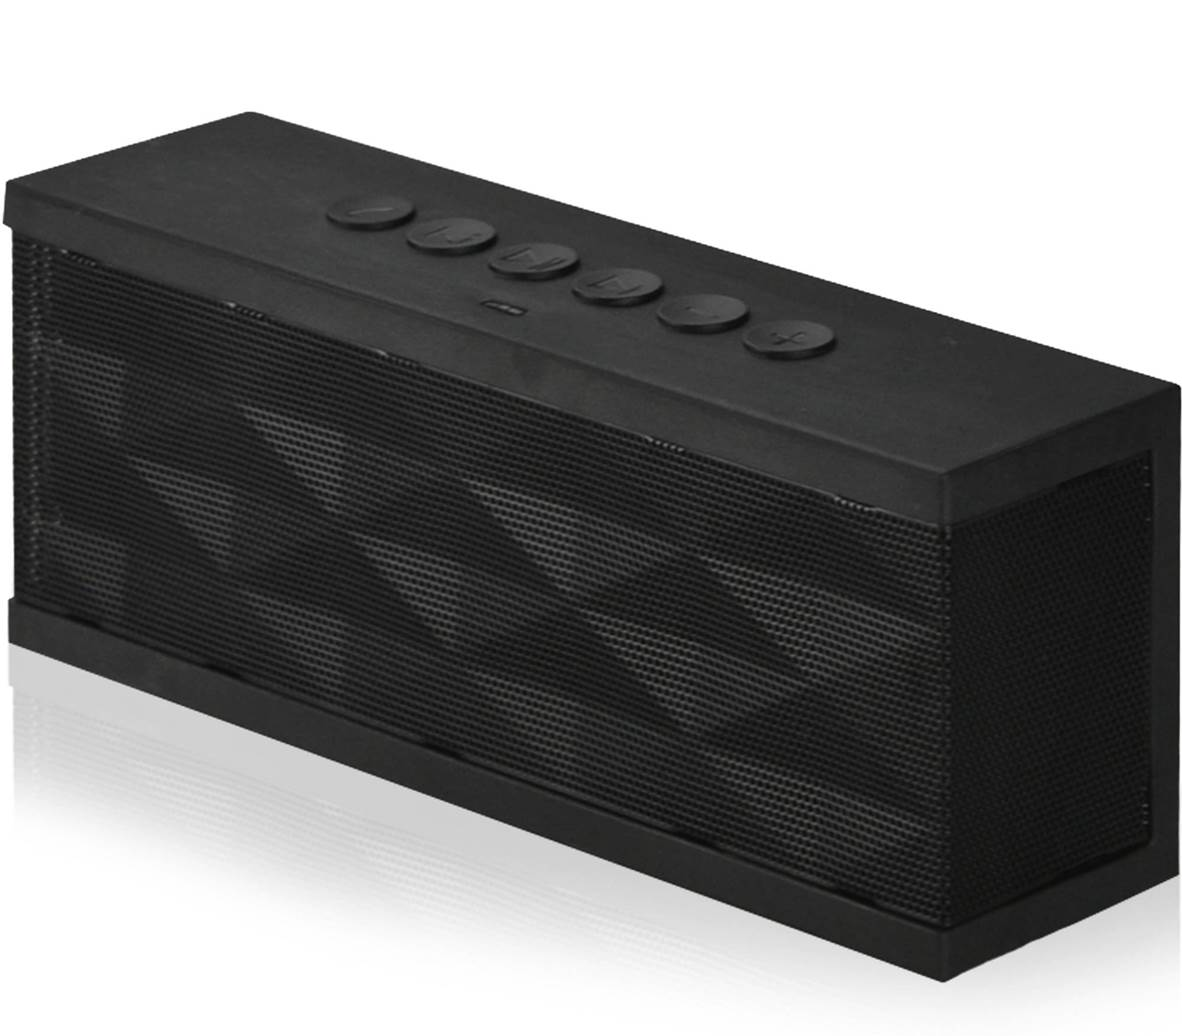 Gute Bluetooth Boxen Boxen Bluetooth Stunning Set Mit Pa Boxen Bluetooth